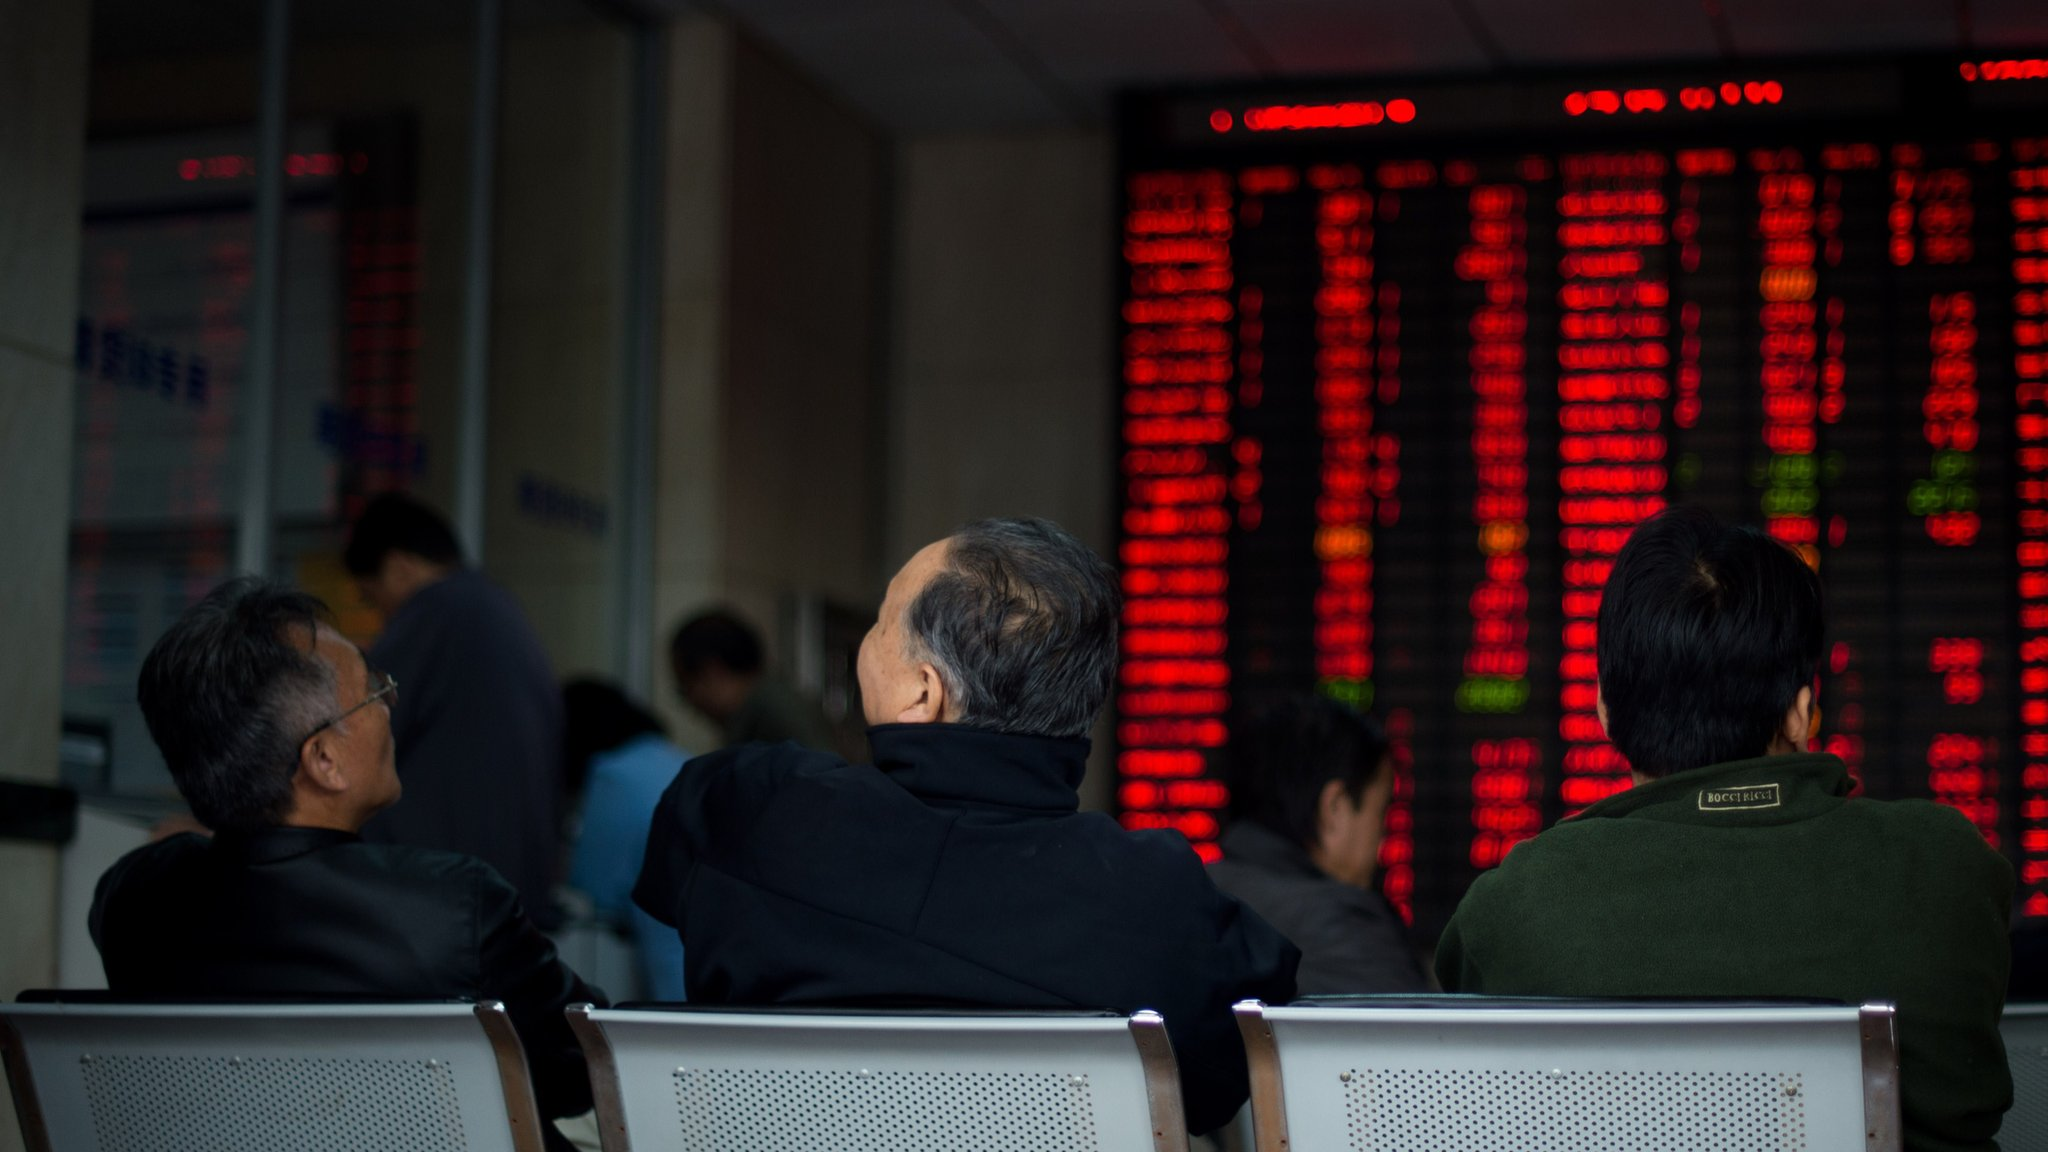 Mainland Chinese shares surge nearly 8% on Monday despite the rest of Asian markets trading lower on Greece's rejection of austerity demands.